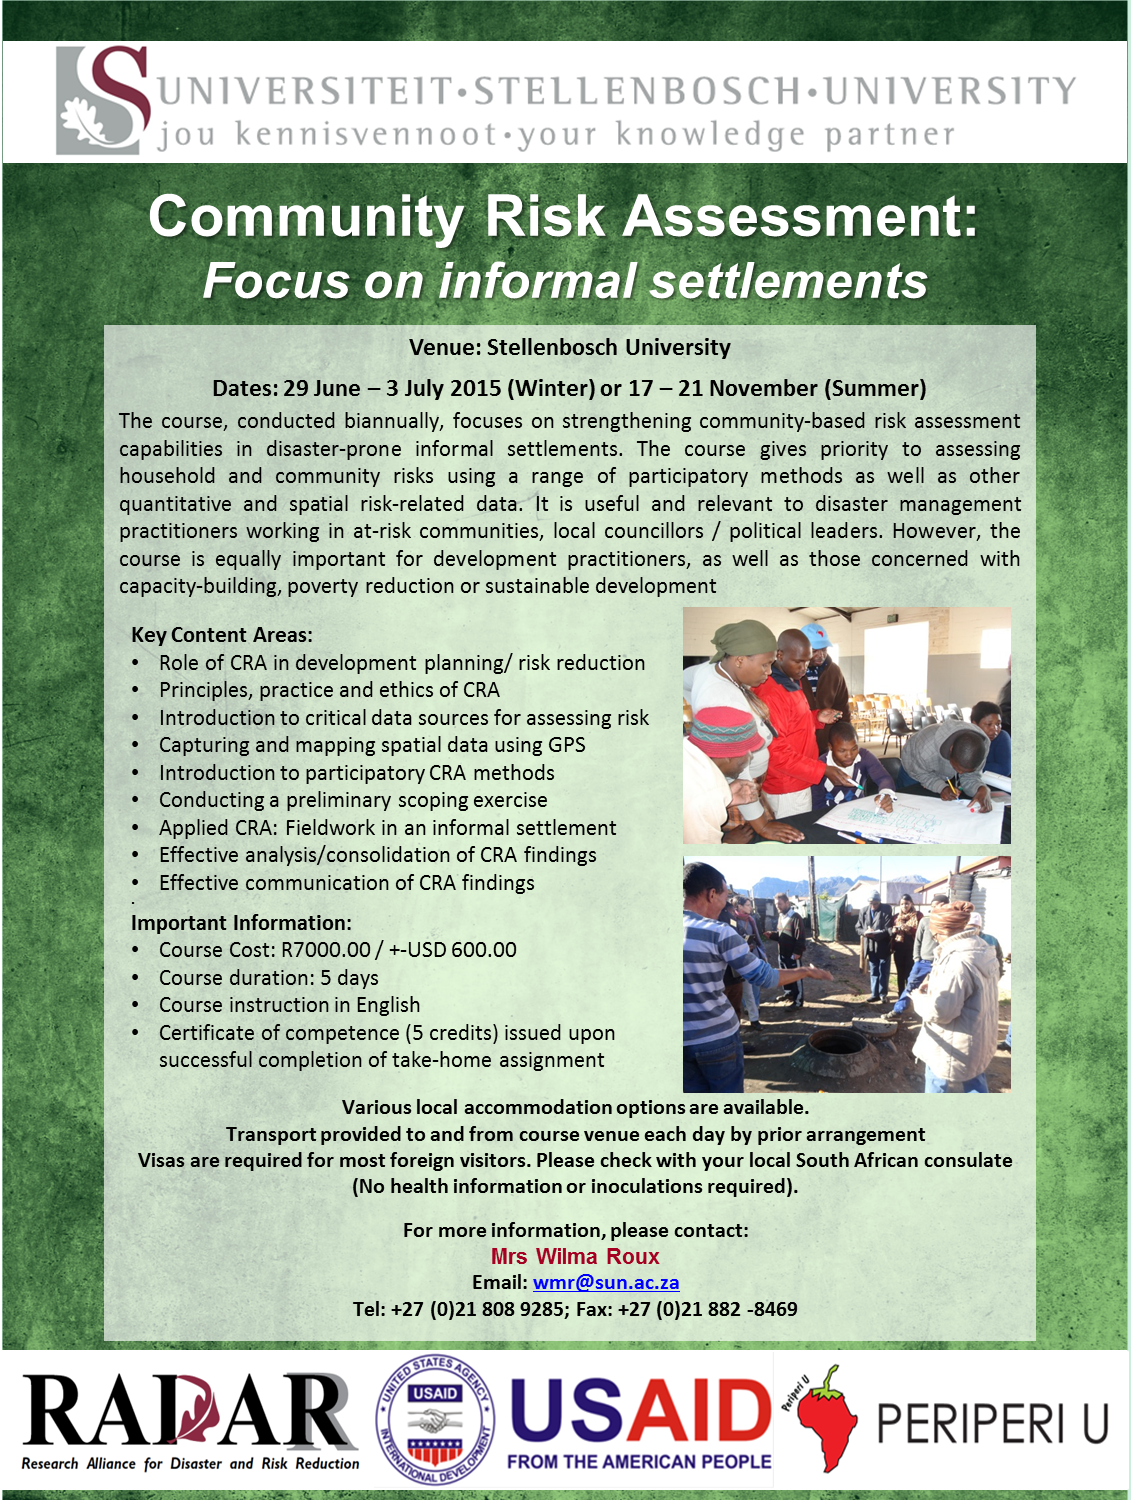 Community Risk Assessment Short Courses - hosted by RADAR